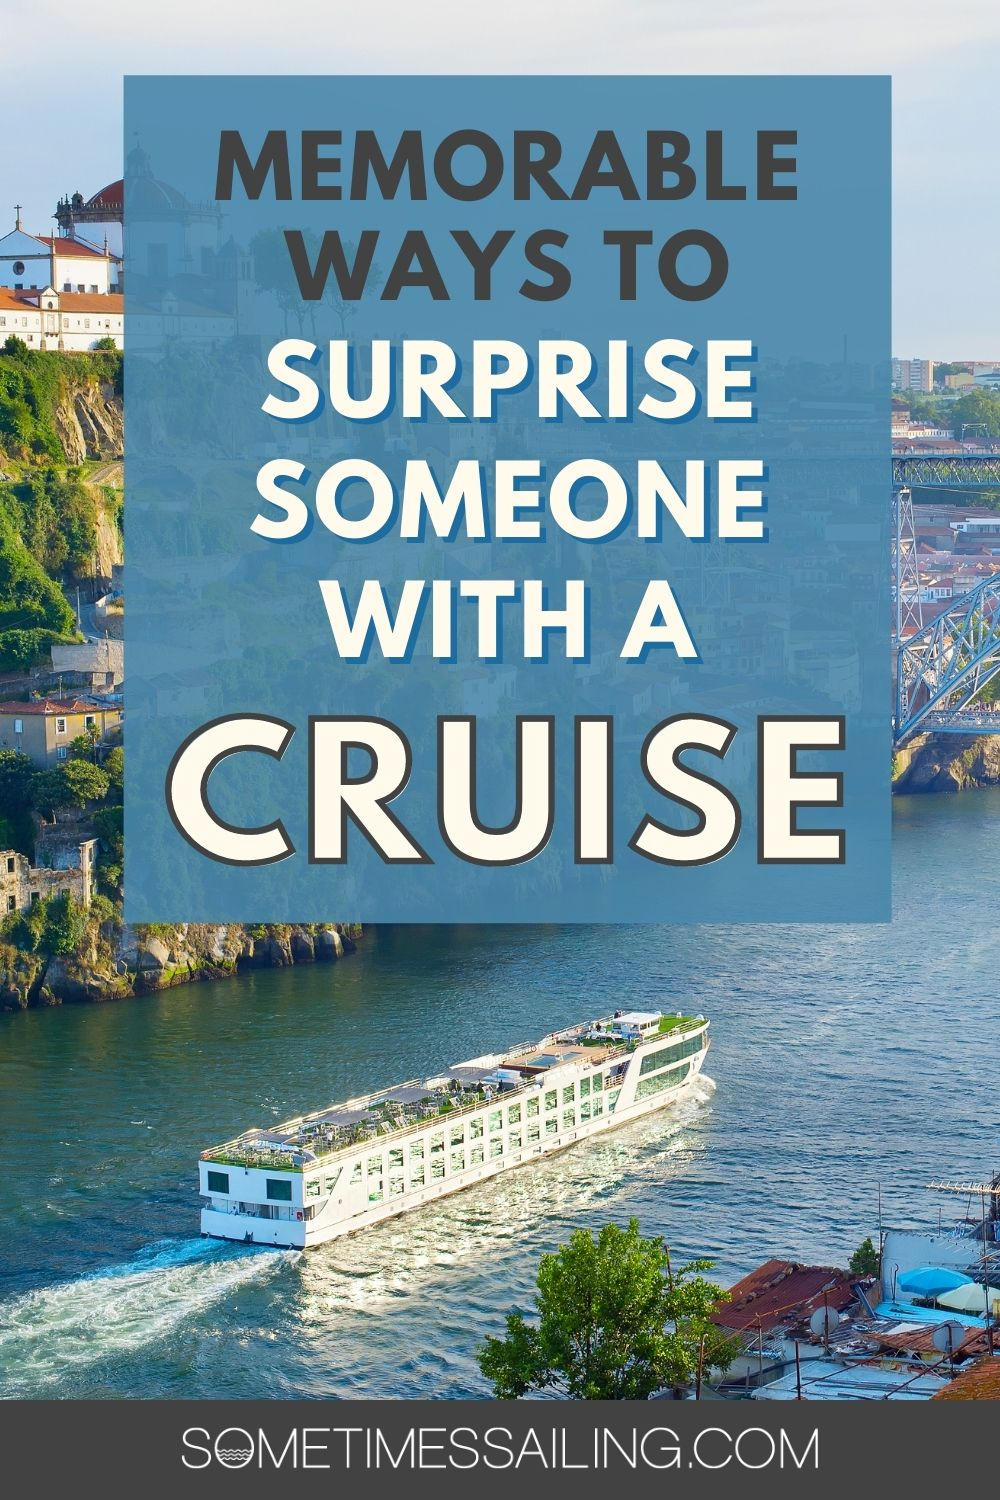 Memorable ways to surprise someone with a cruise, with a photo of a riverboat in the water.